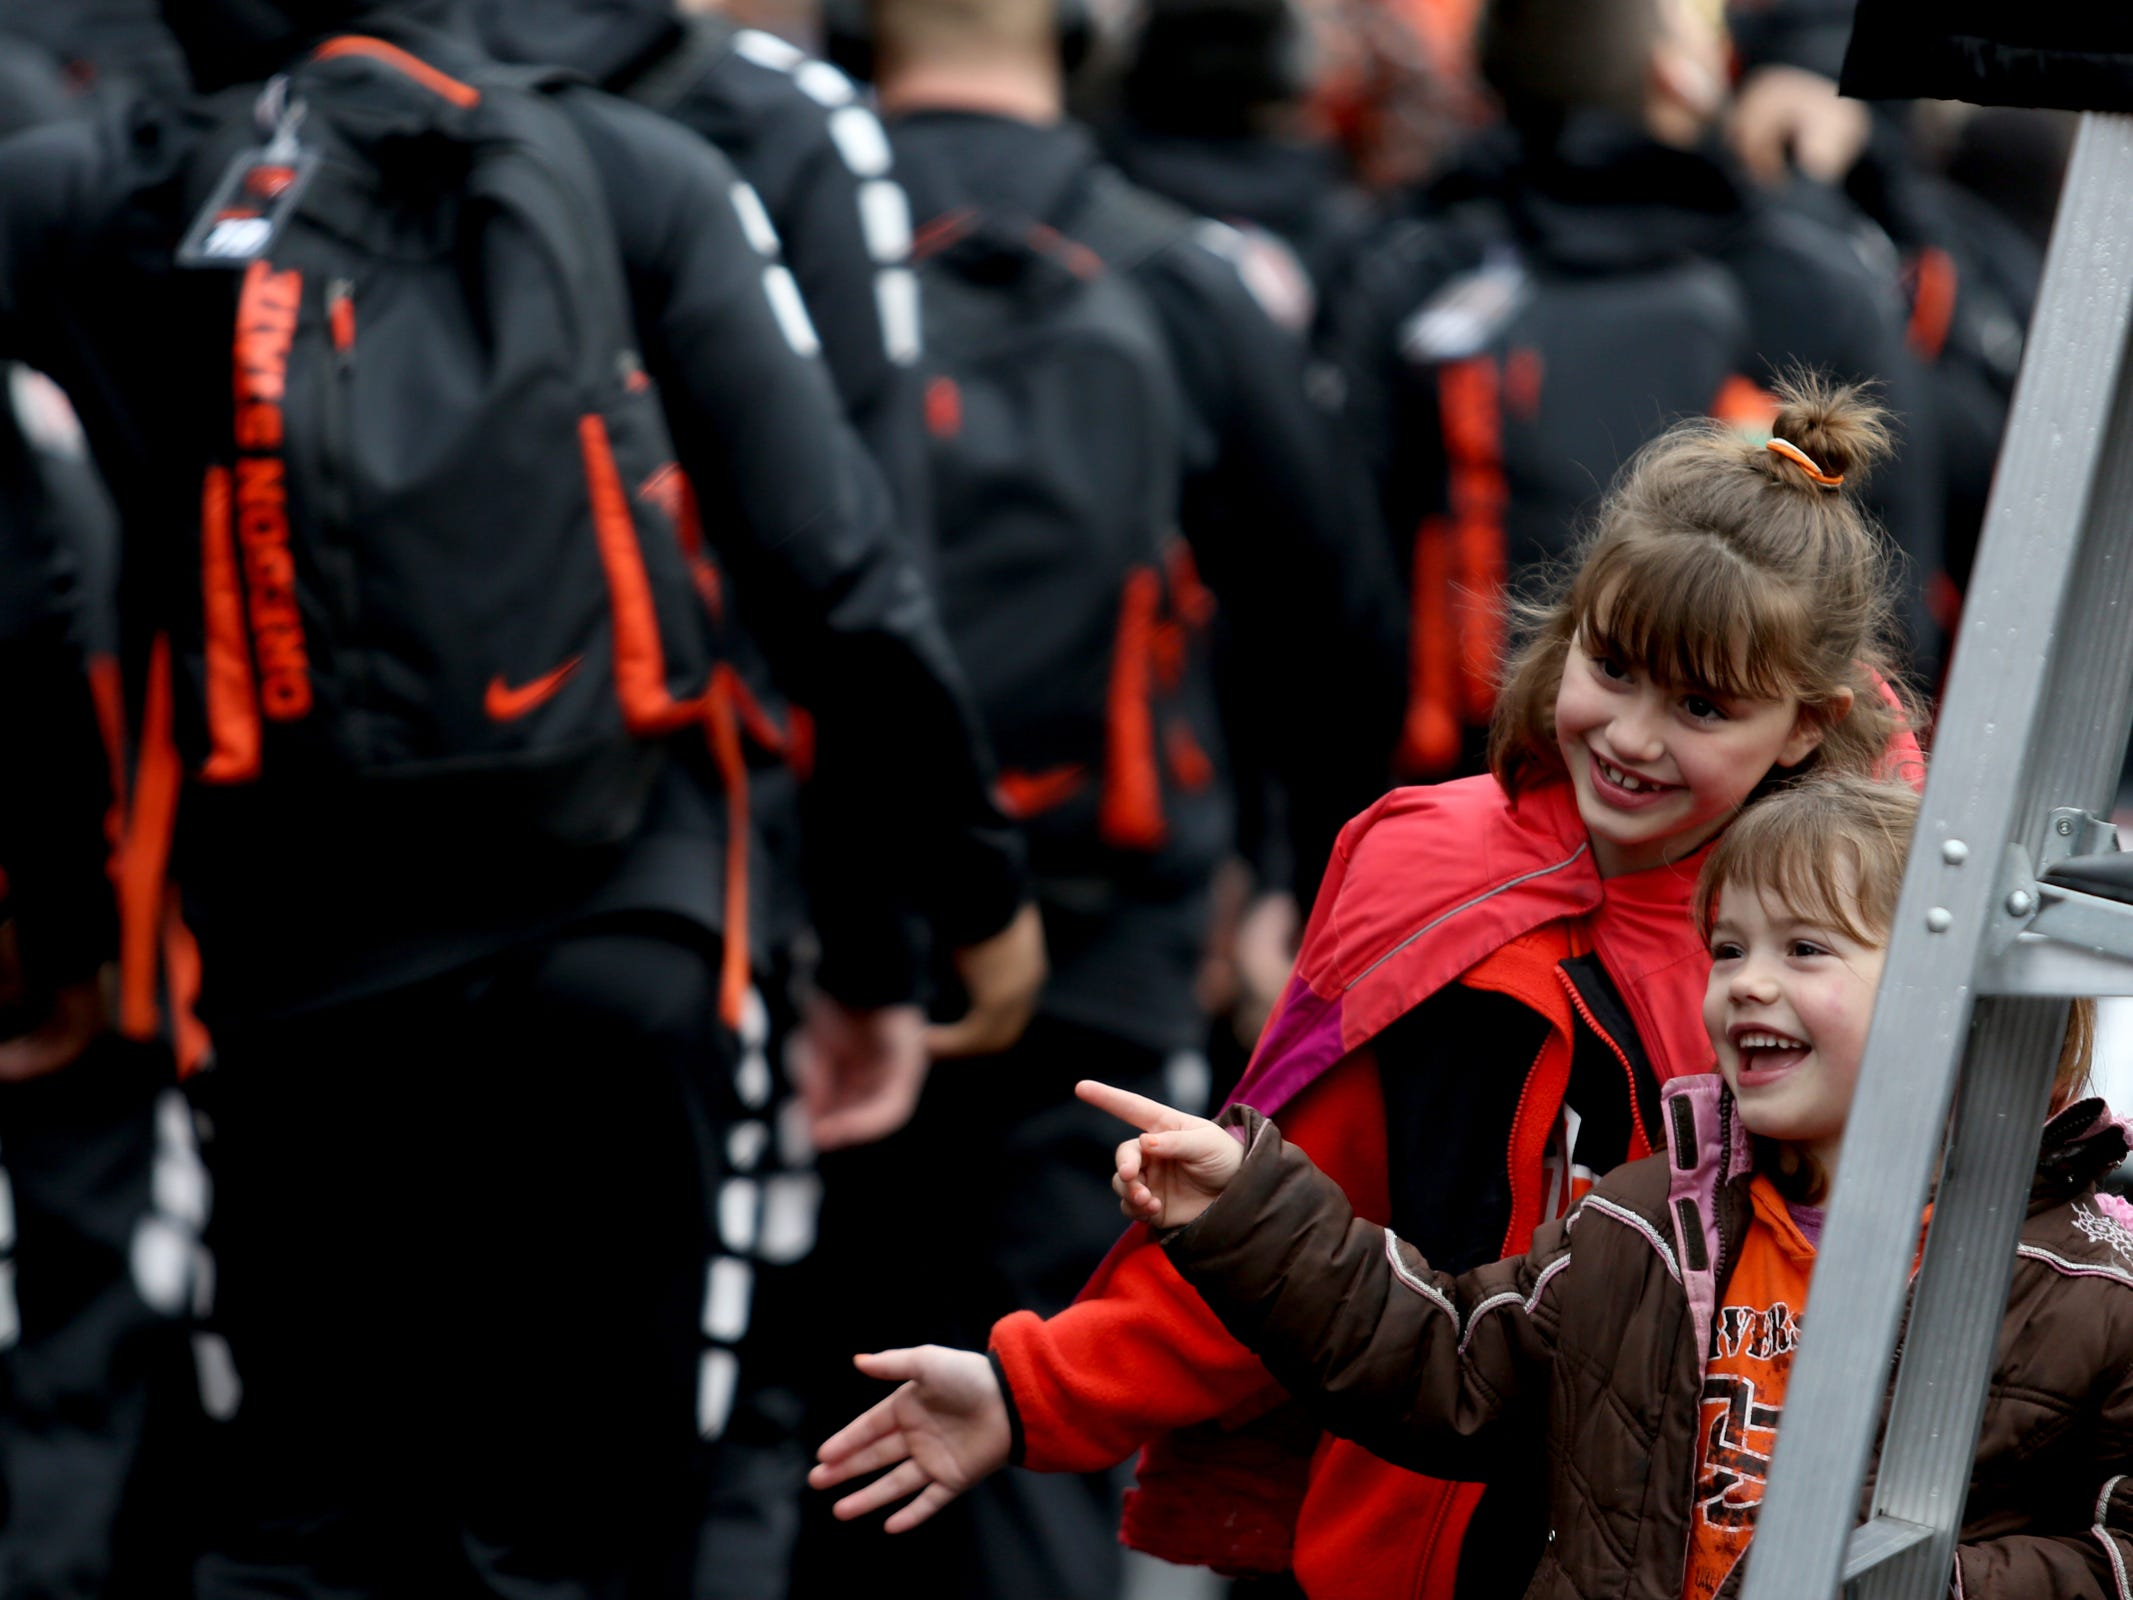 Sisters Kayla, 9, and Kaitlyn Russio, 6, of Happy Valley, wave to Oregon State players before the start of the Oregon vs. Oregon State Civil war football game at Oregon State University in Corvallis on Friday, Nov. 23, 2018.